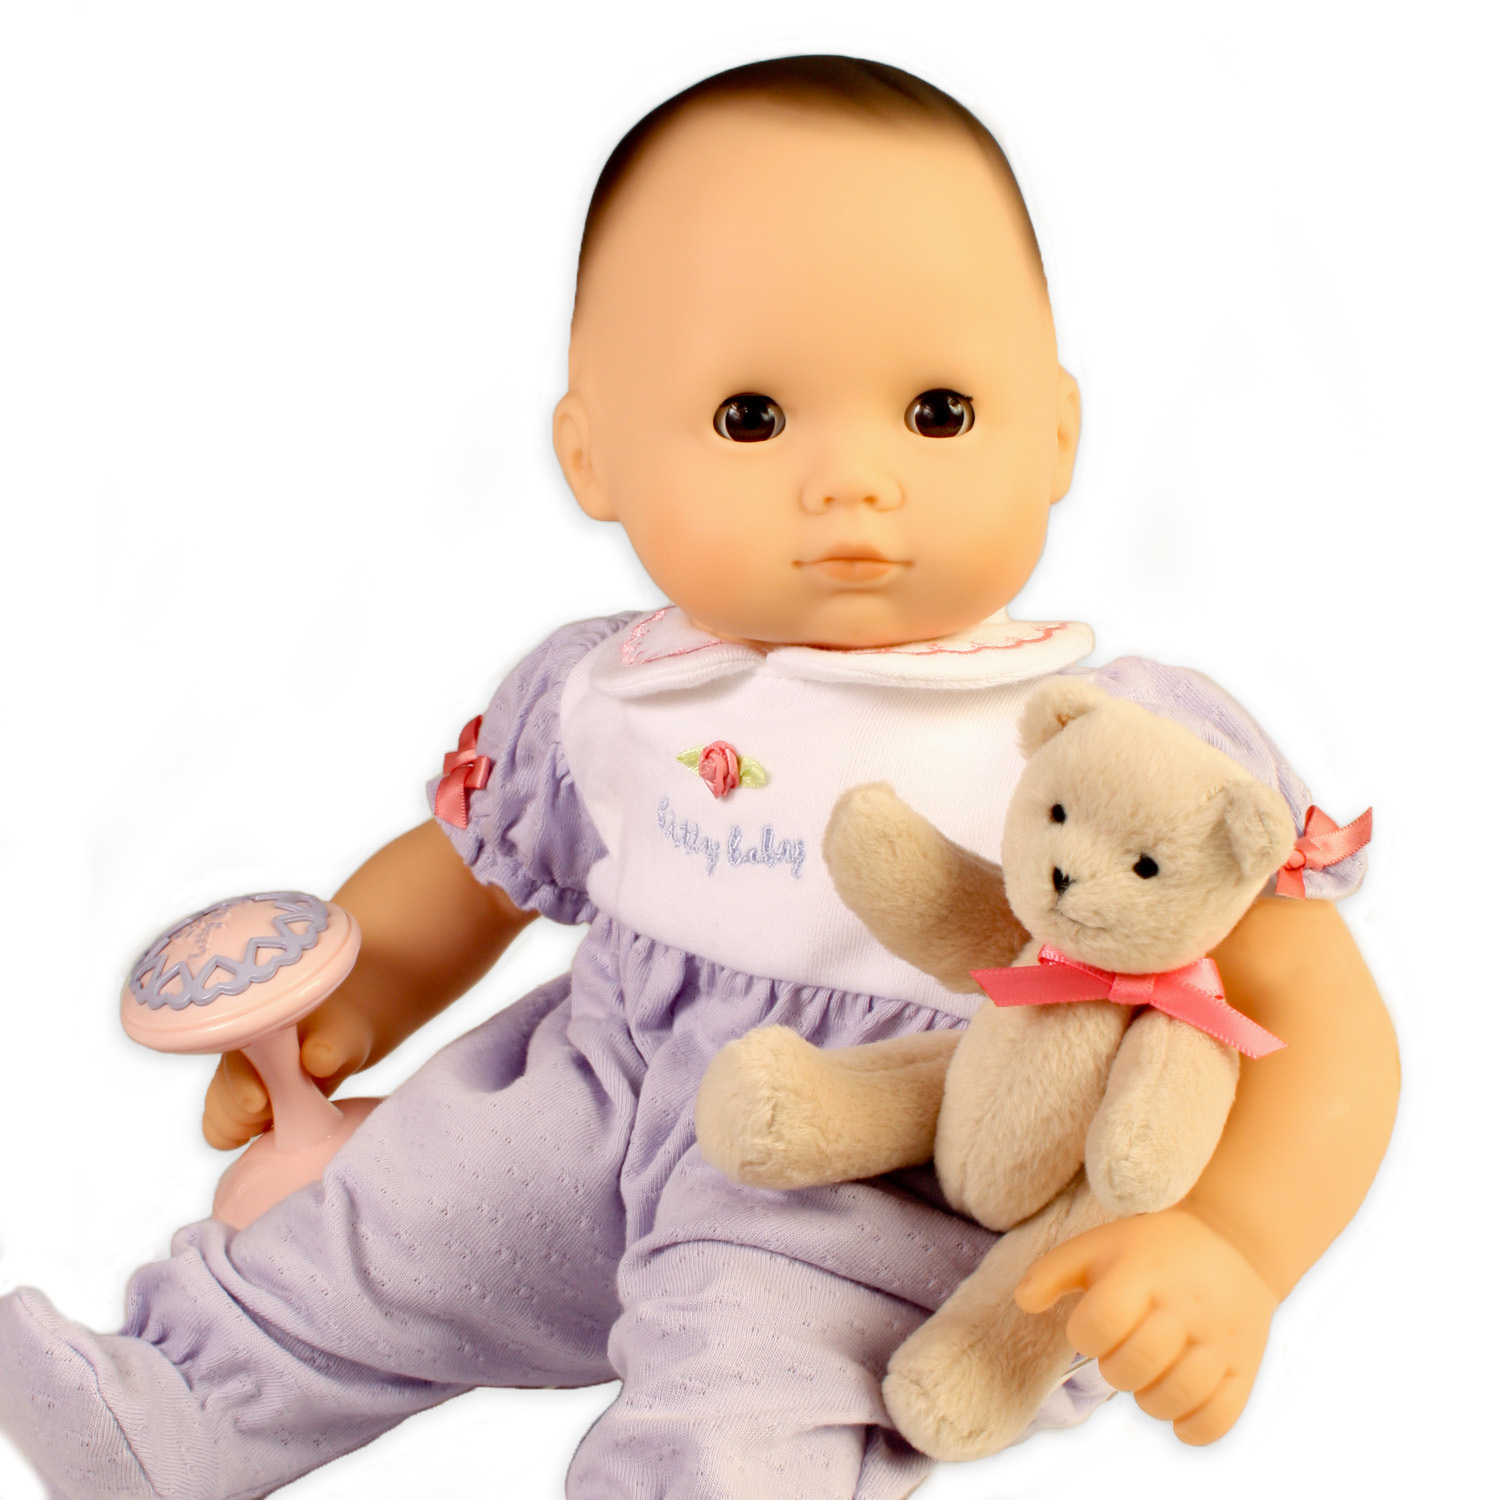 What Type of AG Doll do you Prefer - American Girl Dolls ...